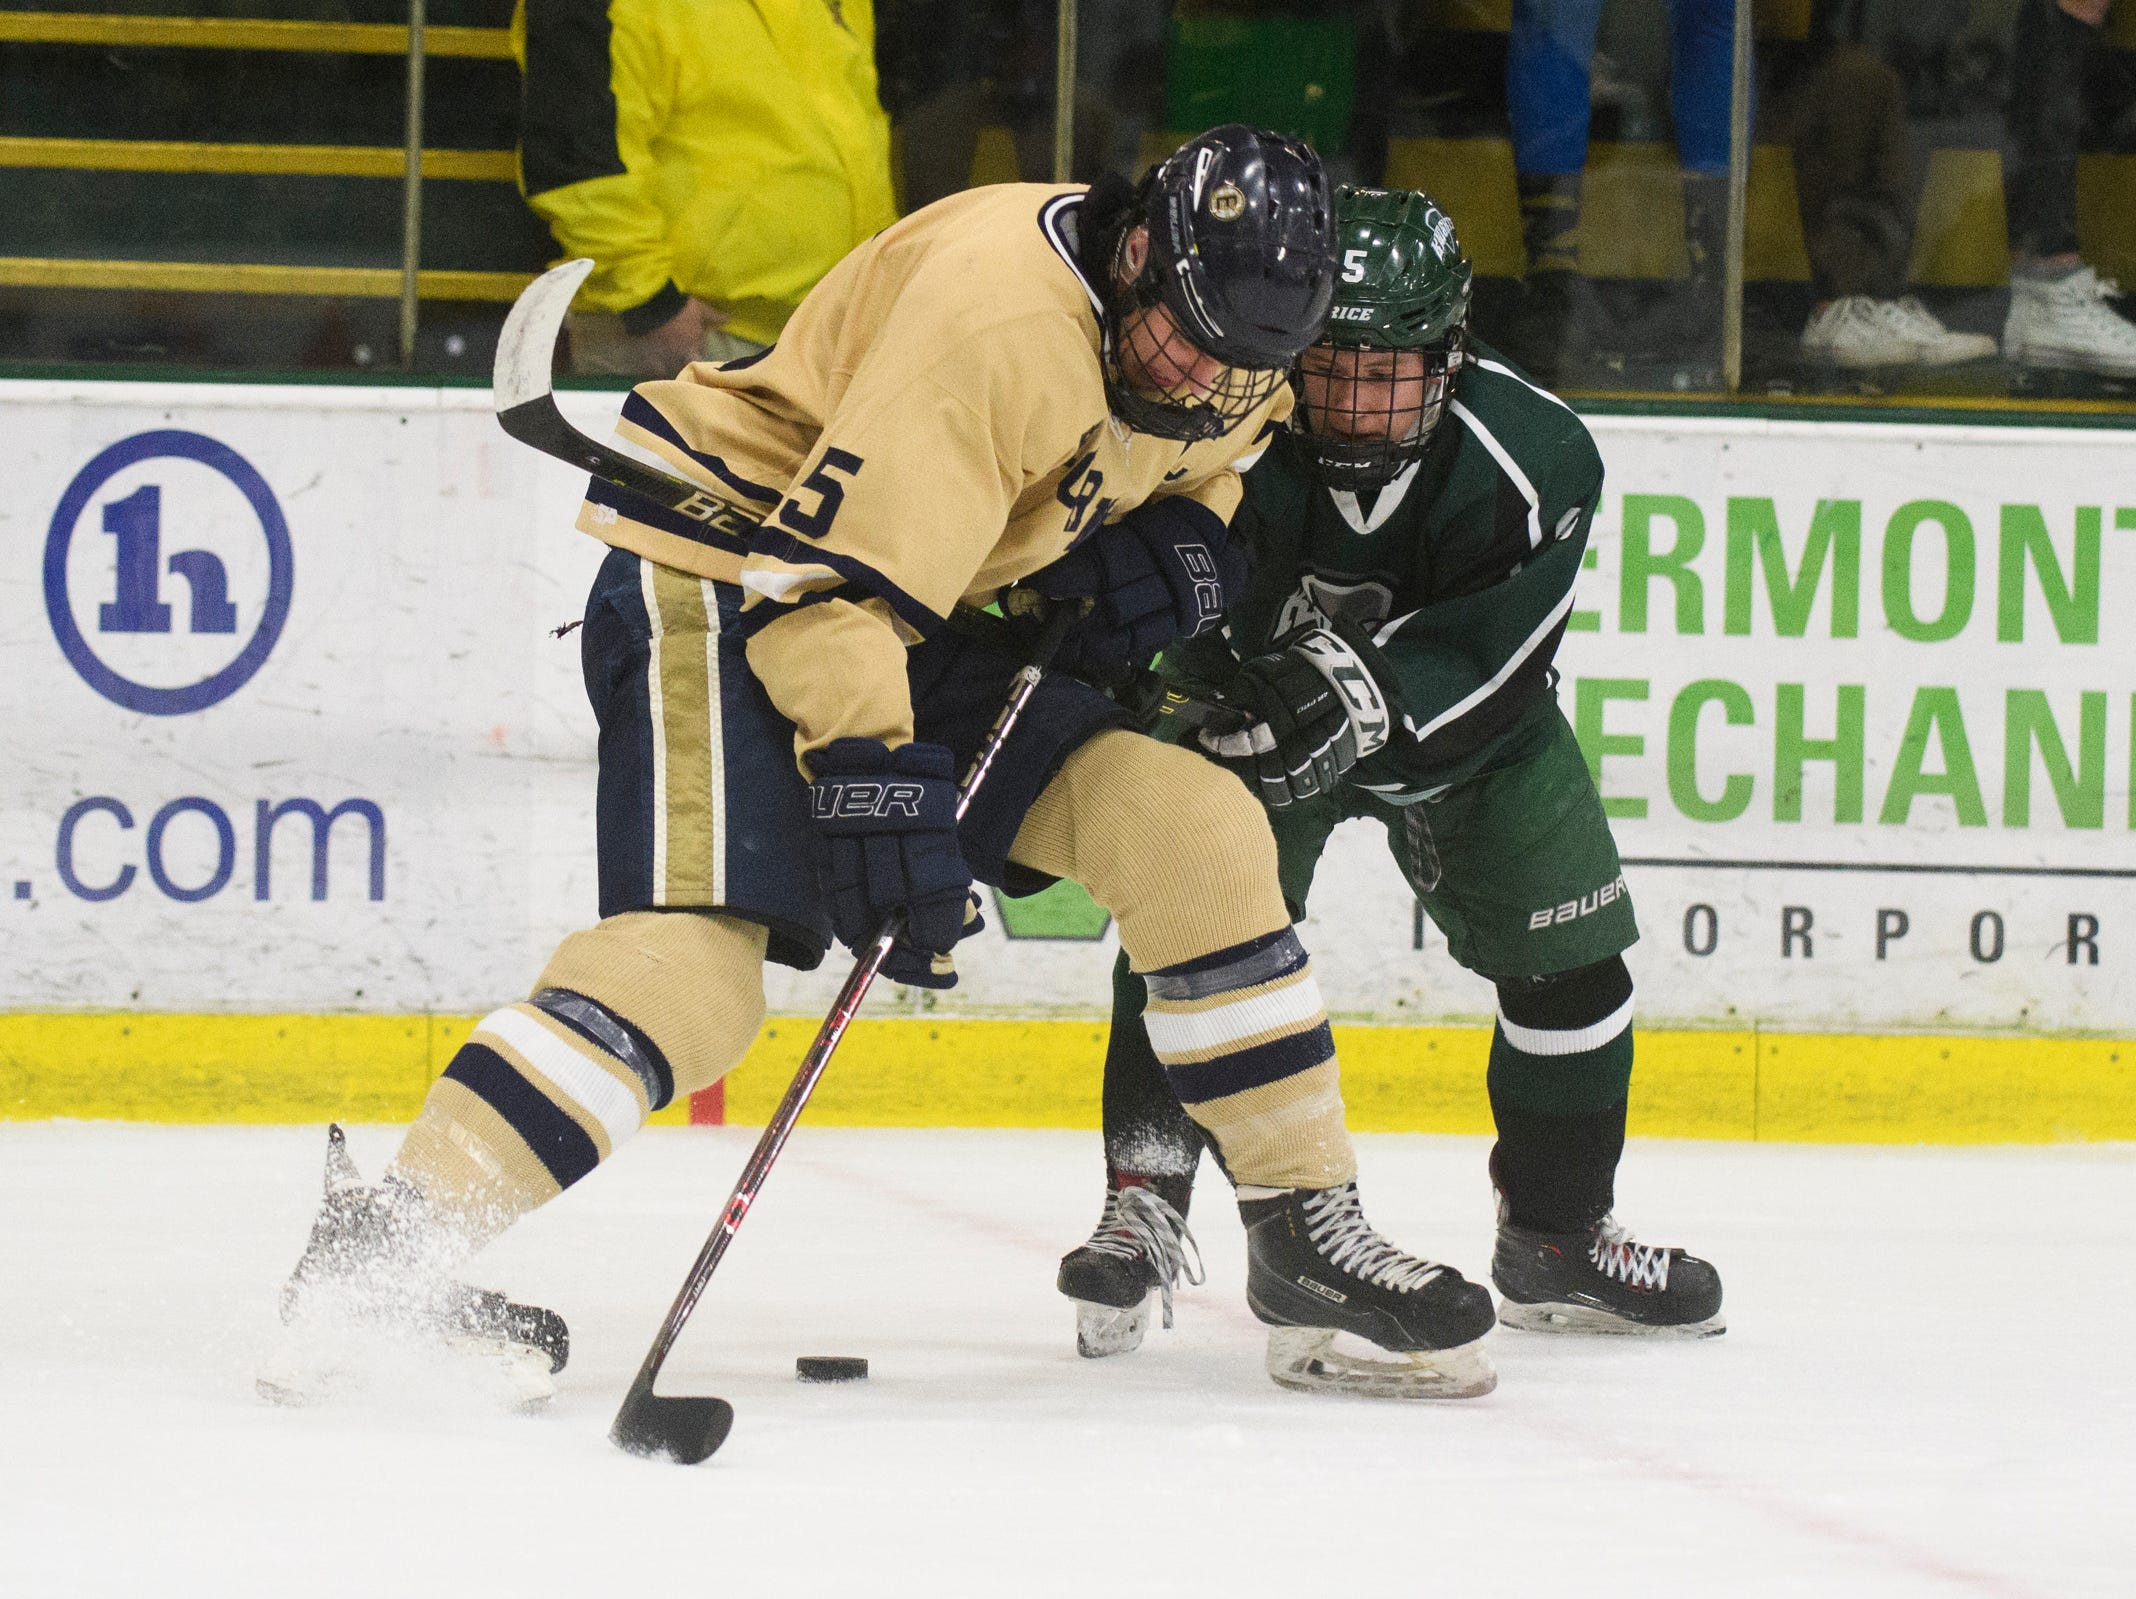 Rice's Connor Peet (5) battles for the puck with Essex's Jonah Janaro (5) during the DI boys hockey championship game between the Rice Green Knights and the Essex Hornets at Gutterson Field House on Wednesday night March 13, 2019 in Burlington, Vermont.